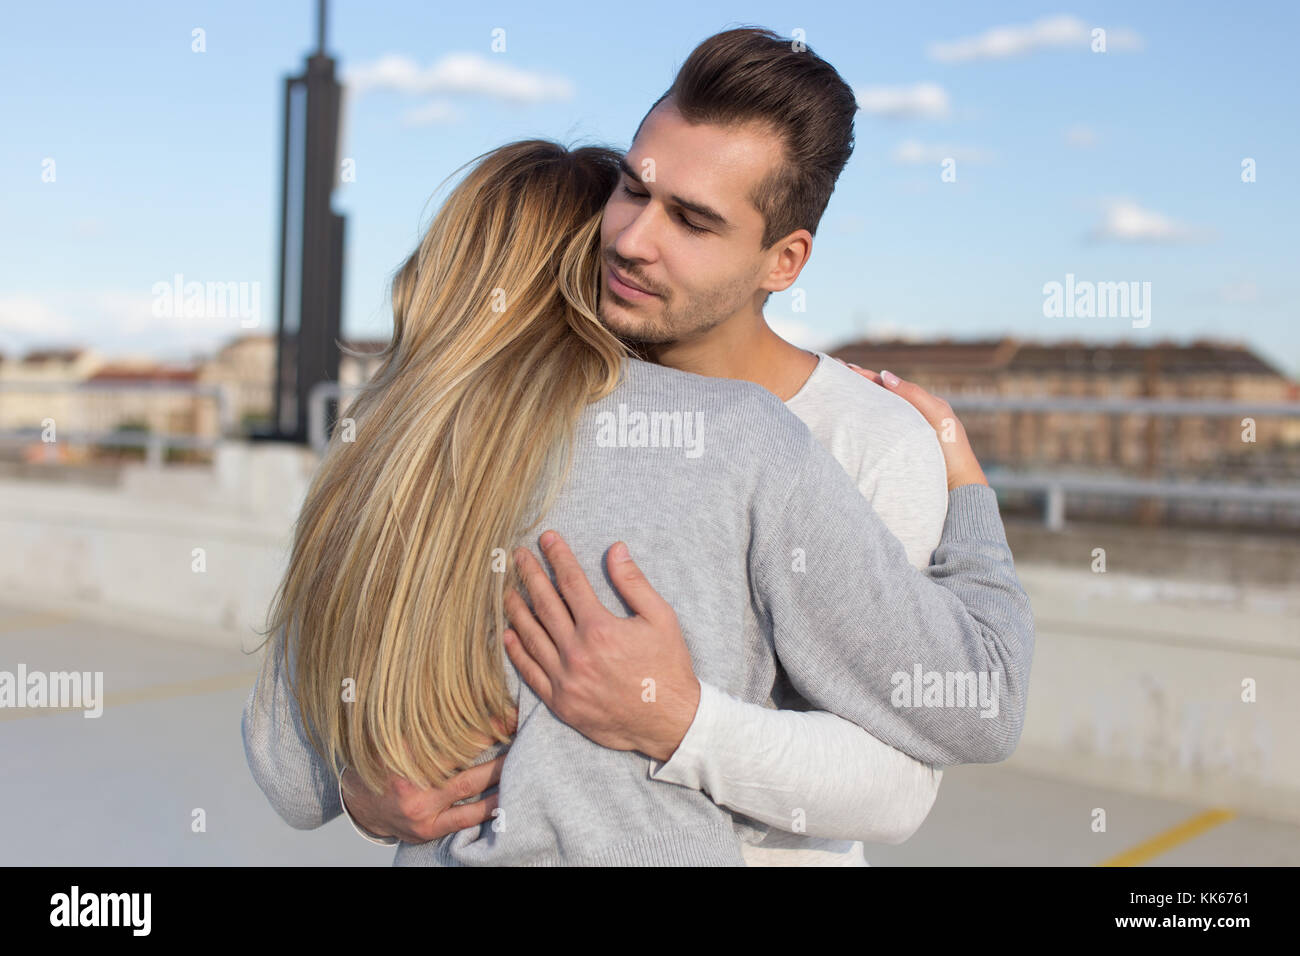 Young man cuddle girlfriend outdoors, understanding and love - Stock Image